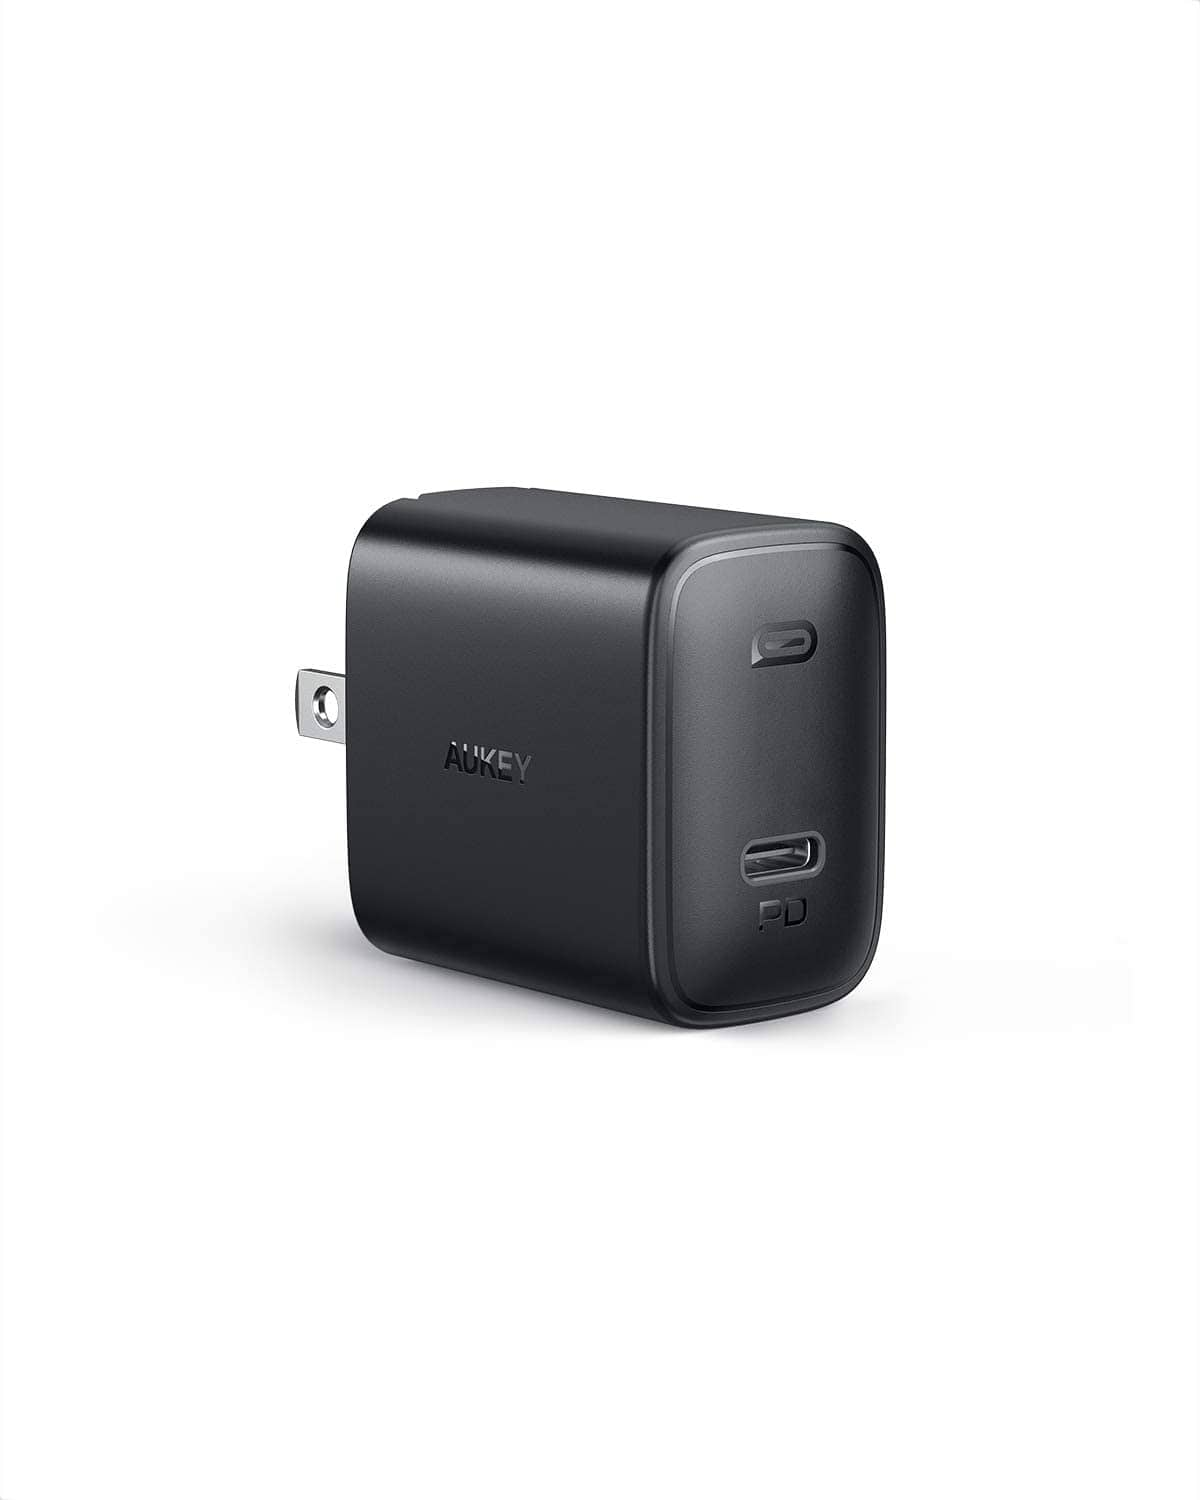 Aukey 18w Power Delivery 3.0 USB C Charger $8.88